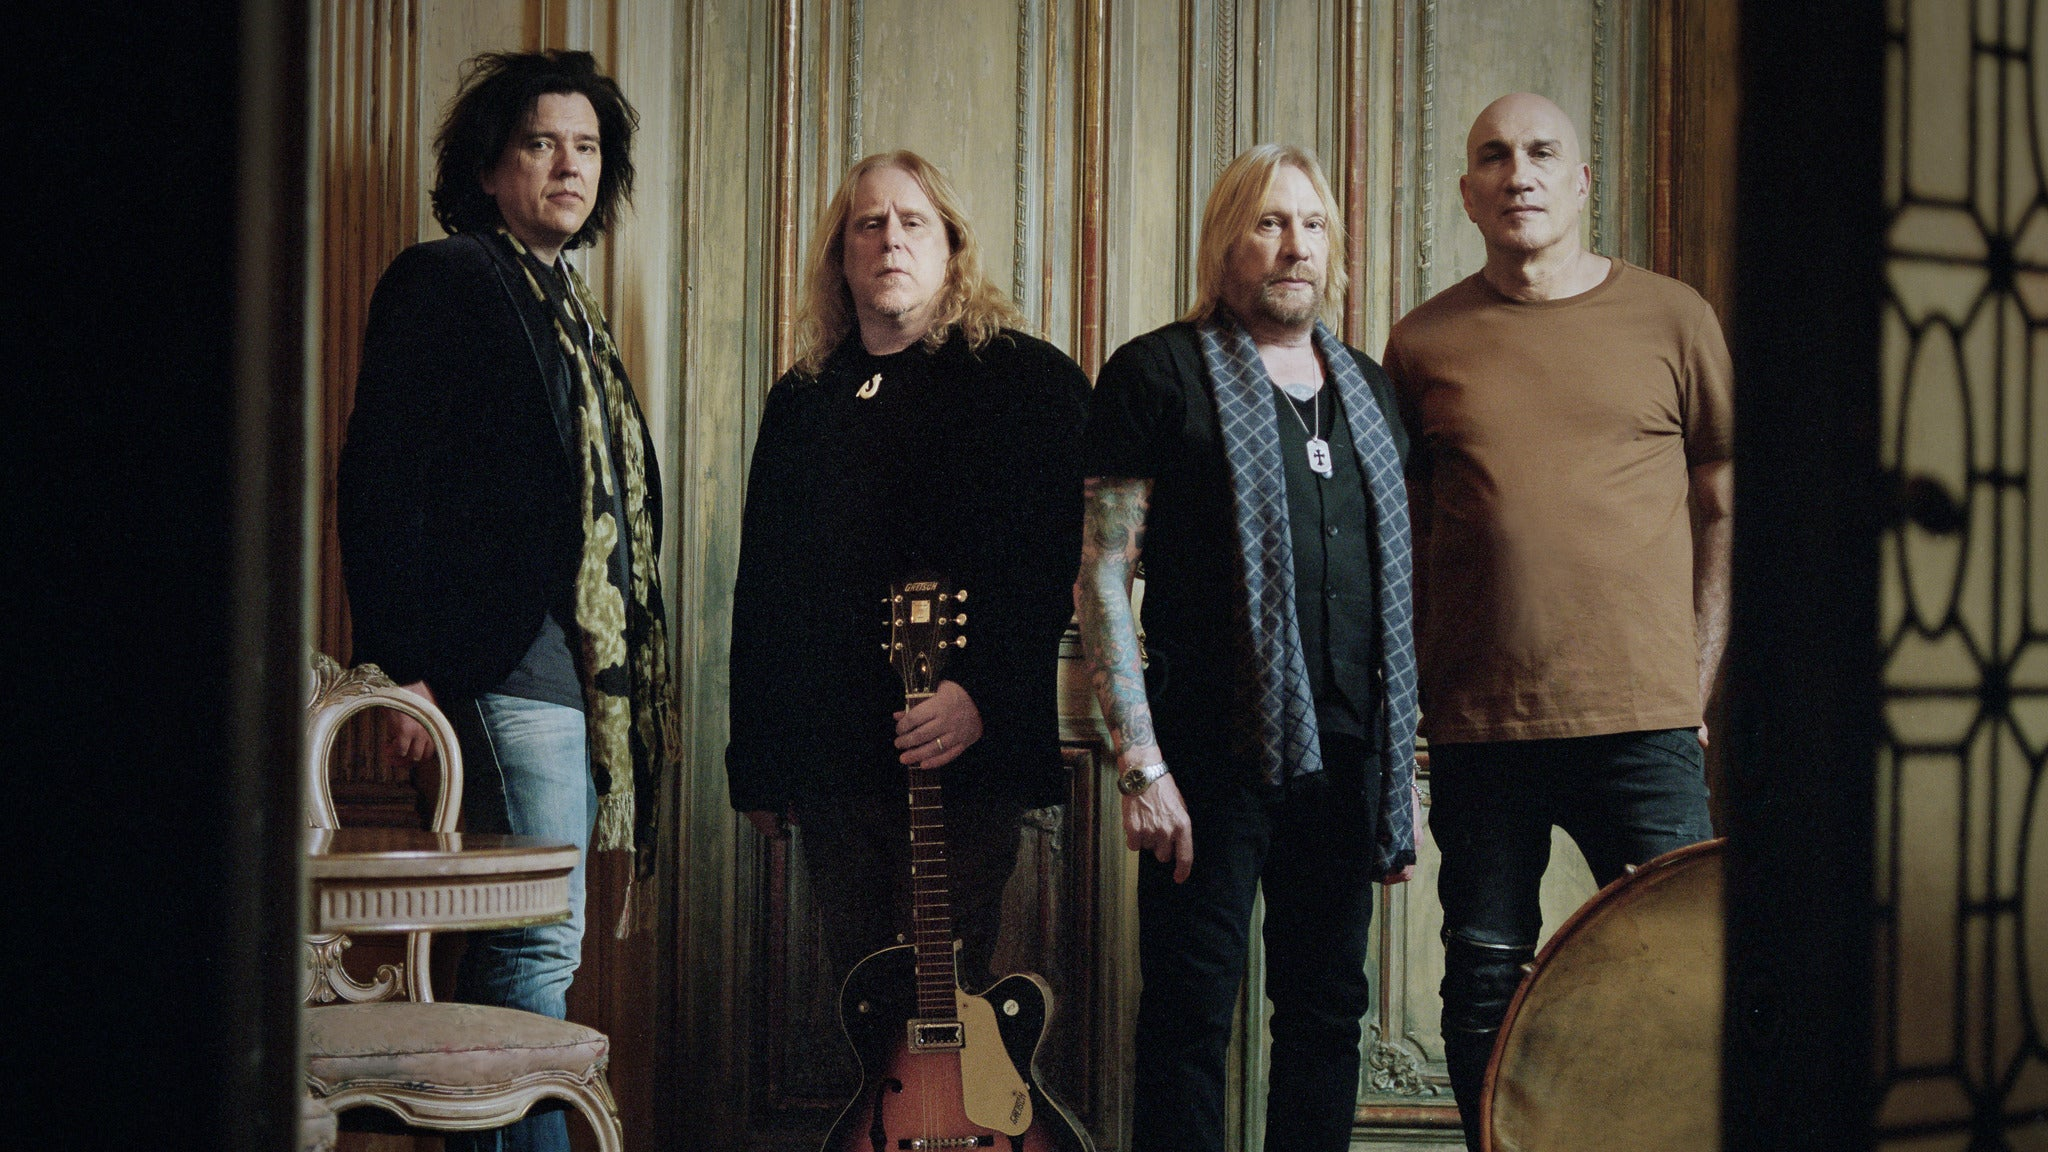 Gov't Mule at Fox Theater - Oakland - Oakland, CA 94612